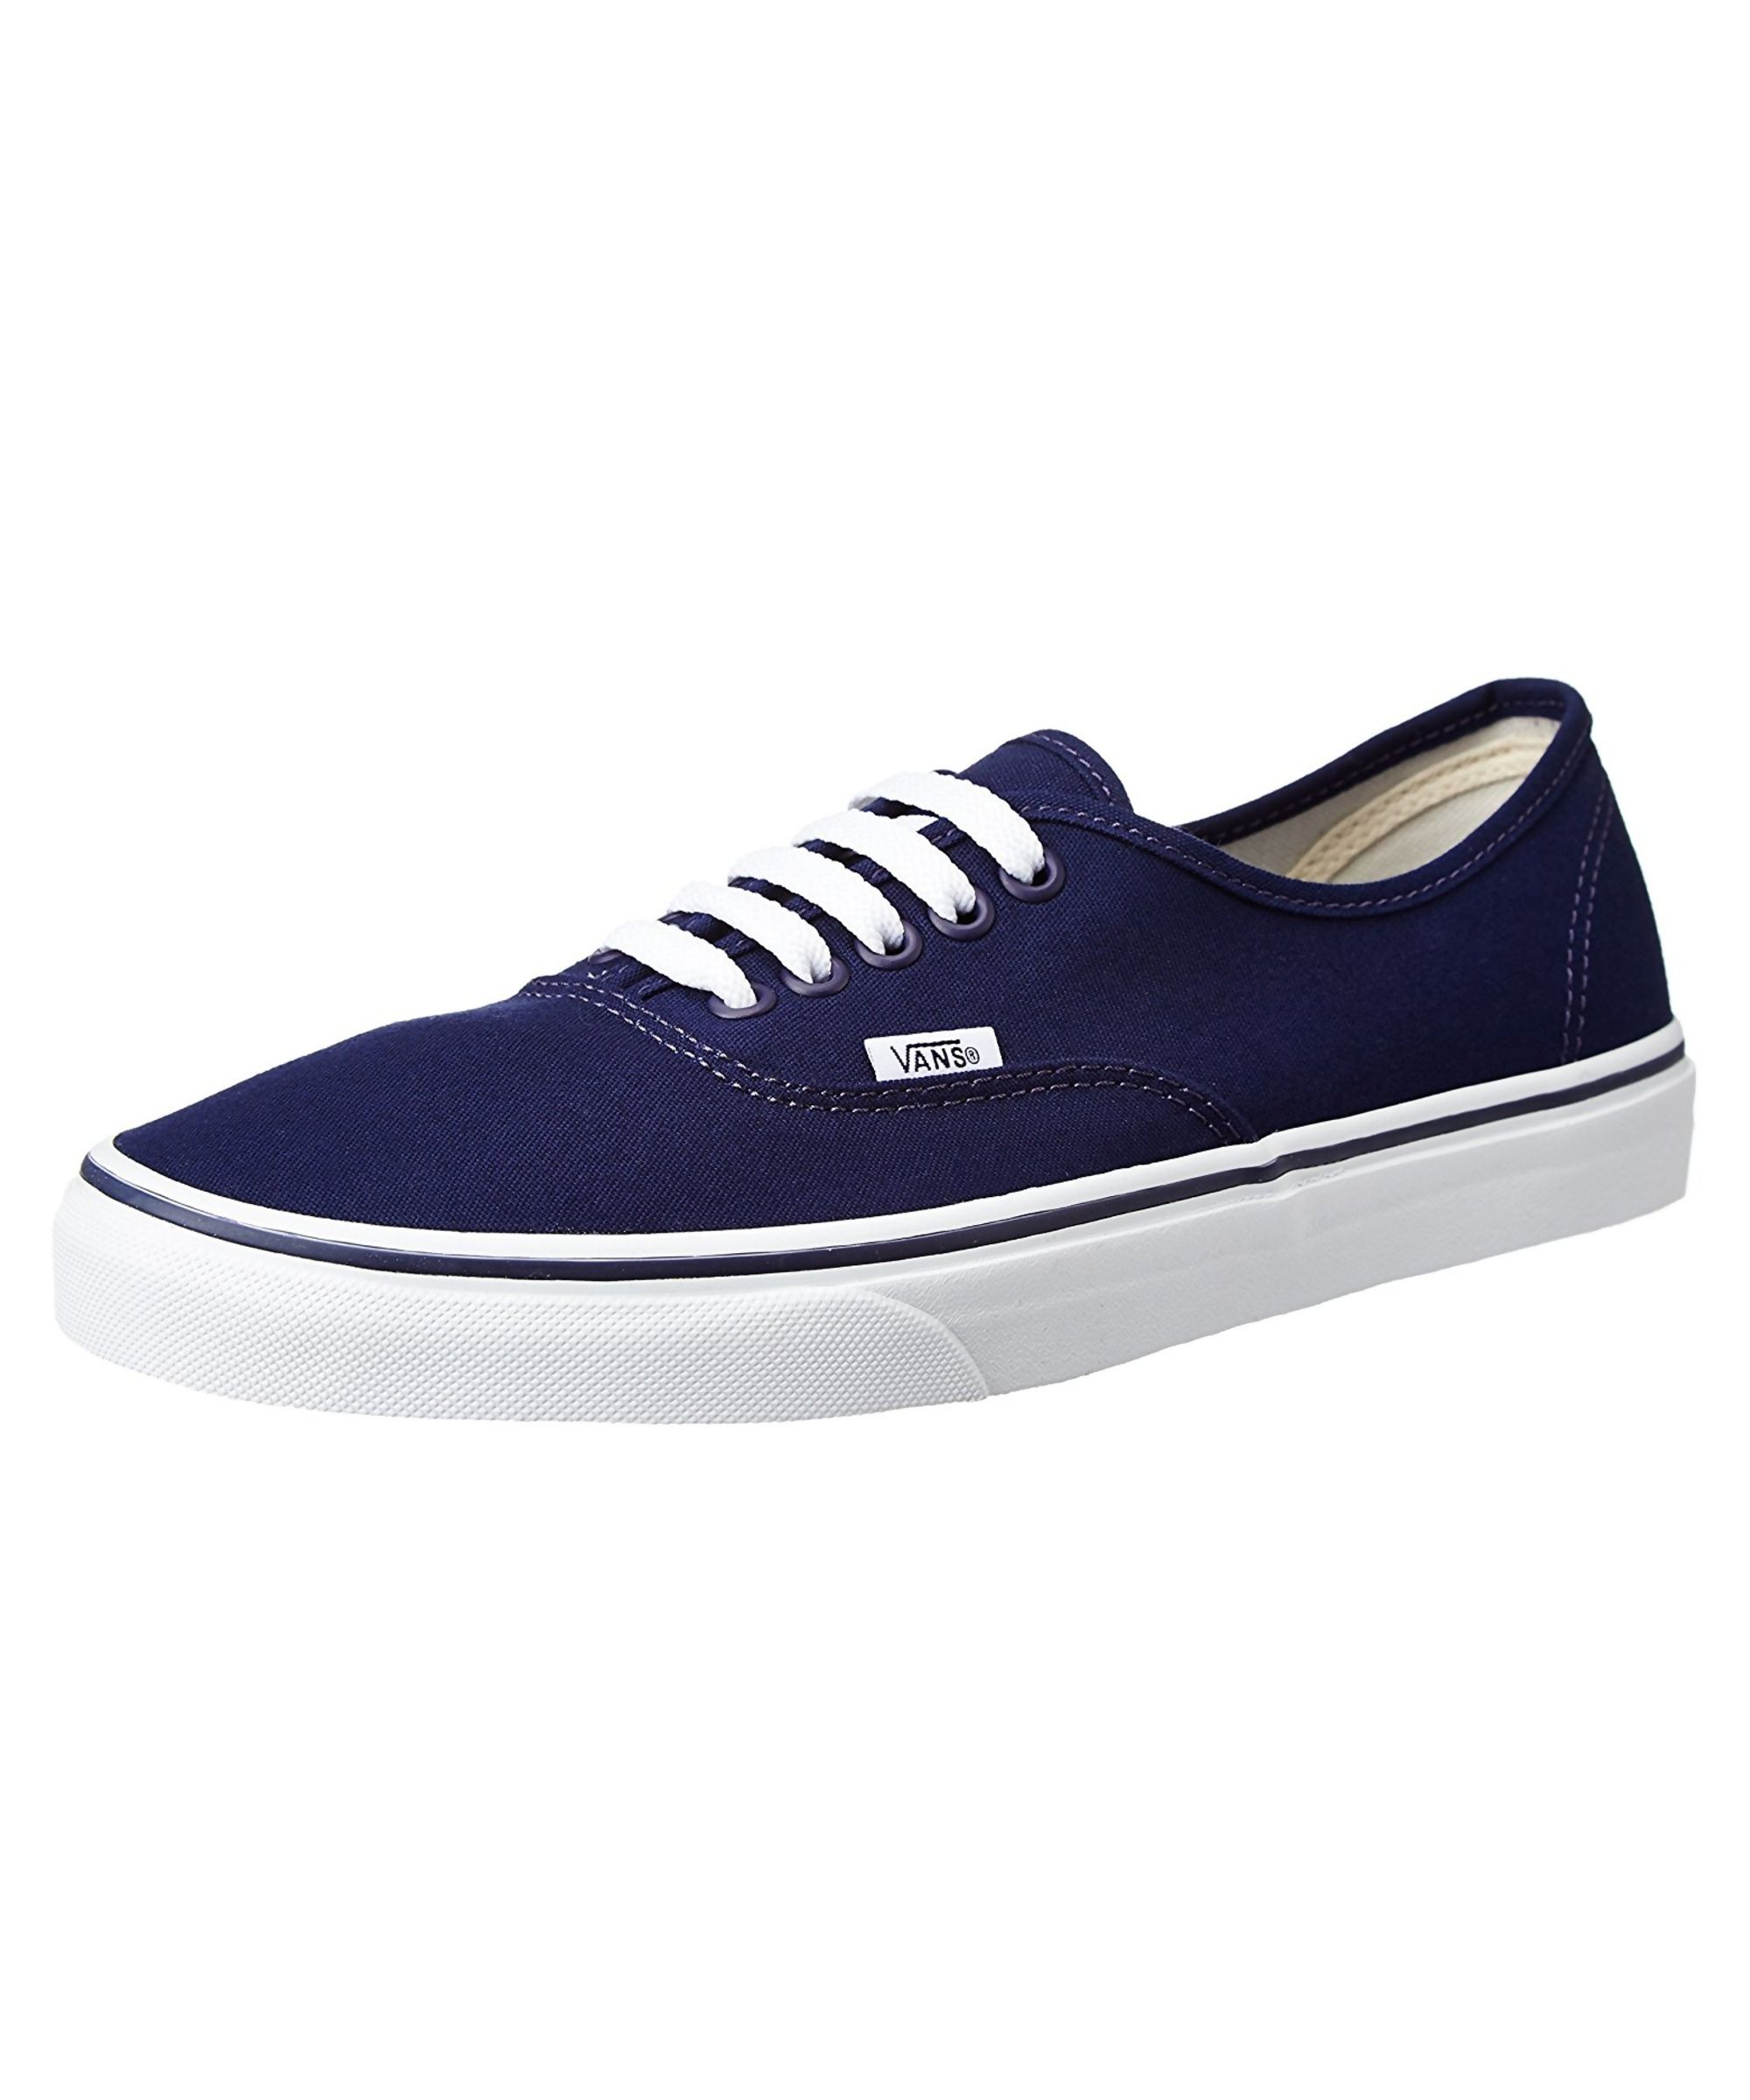 Vans Womens Eclipse Low Top Lace...